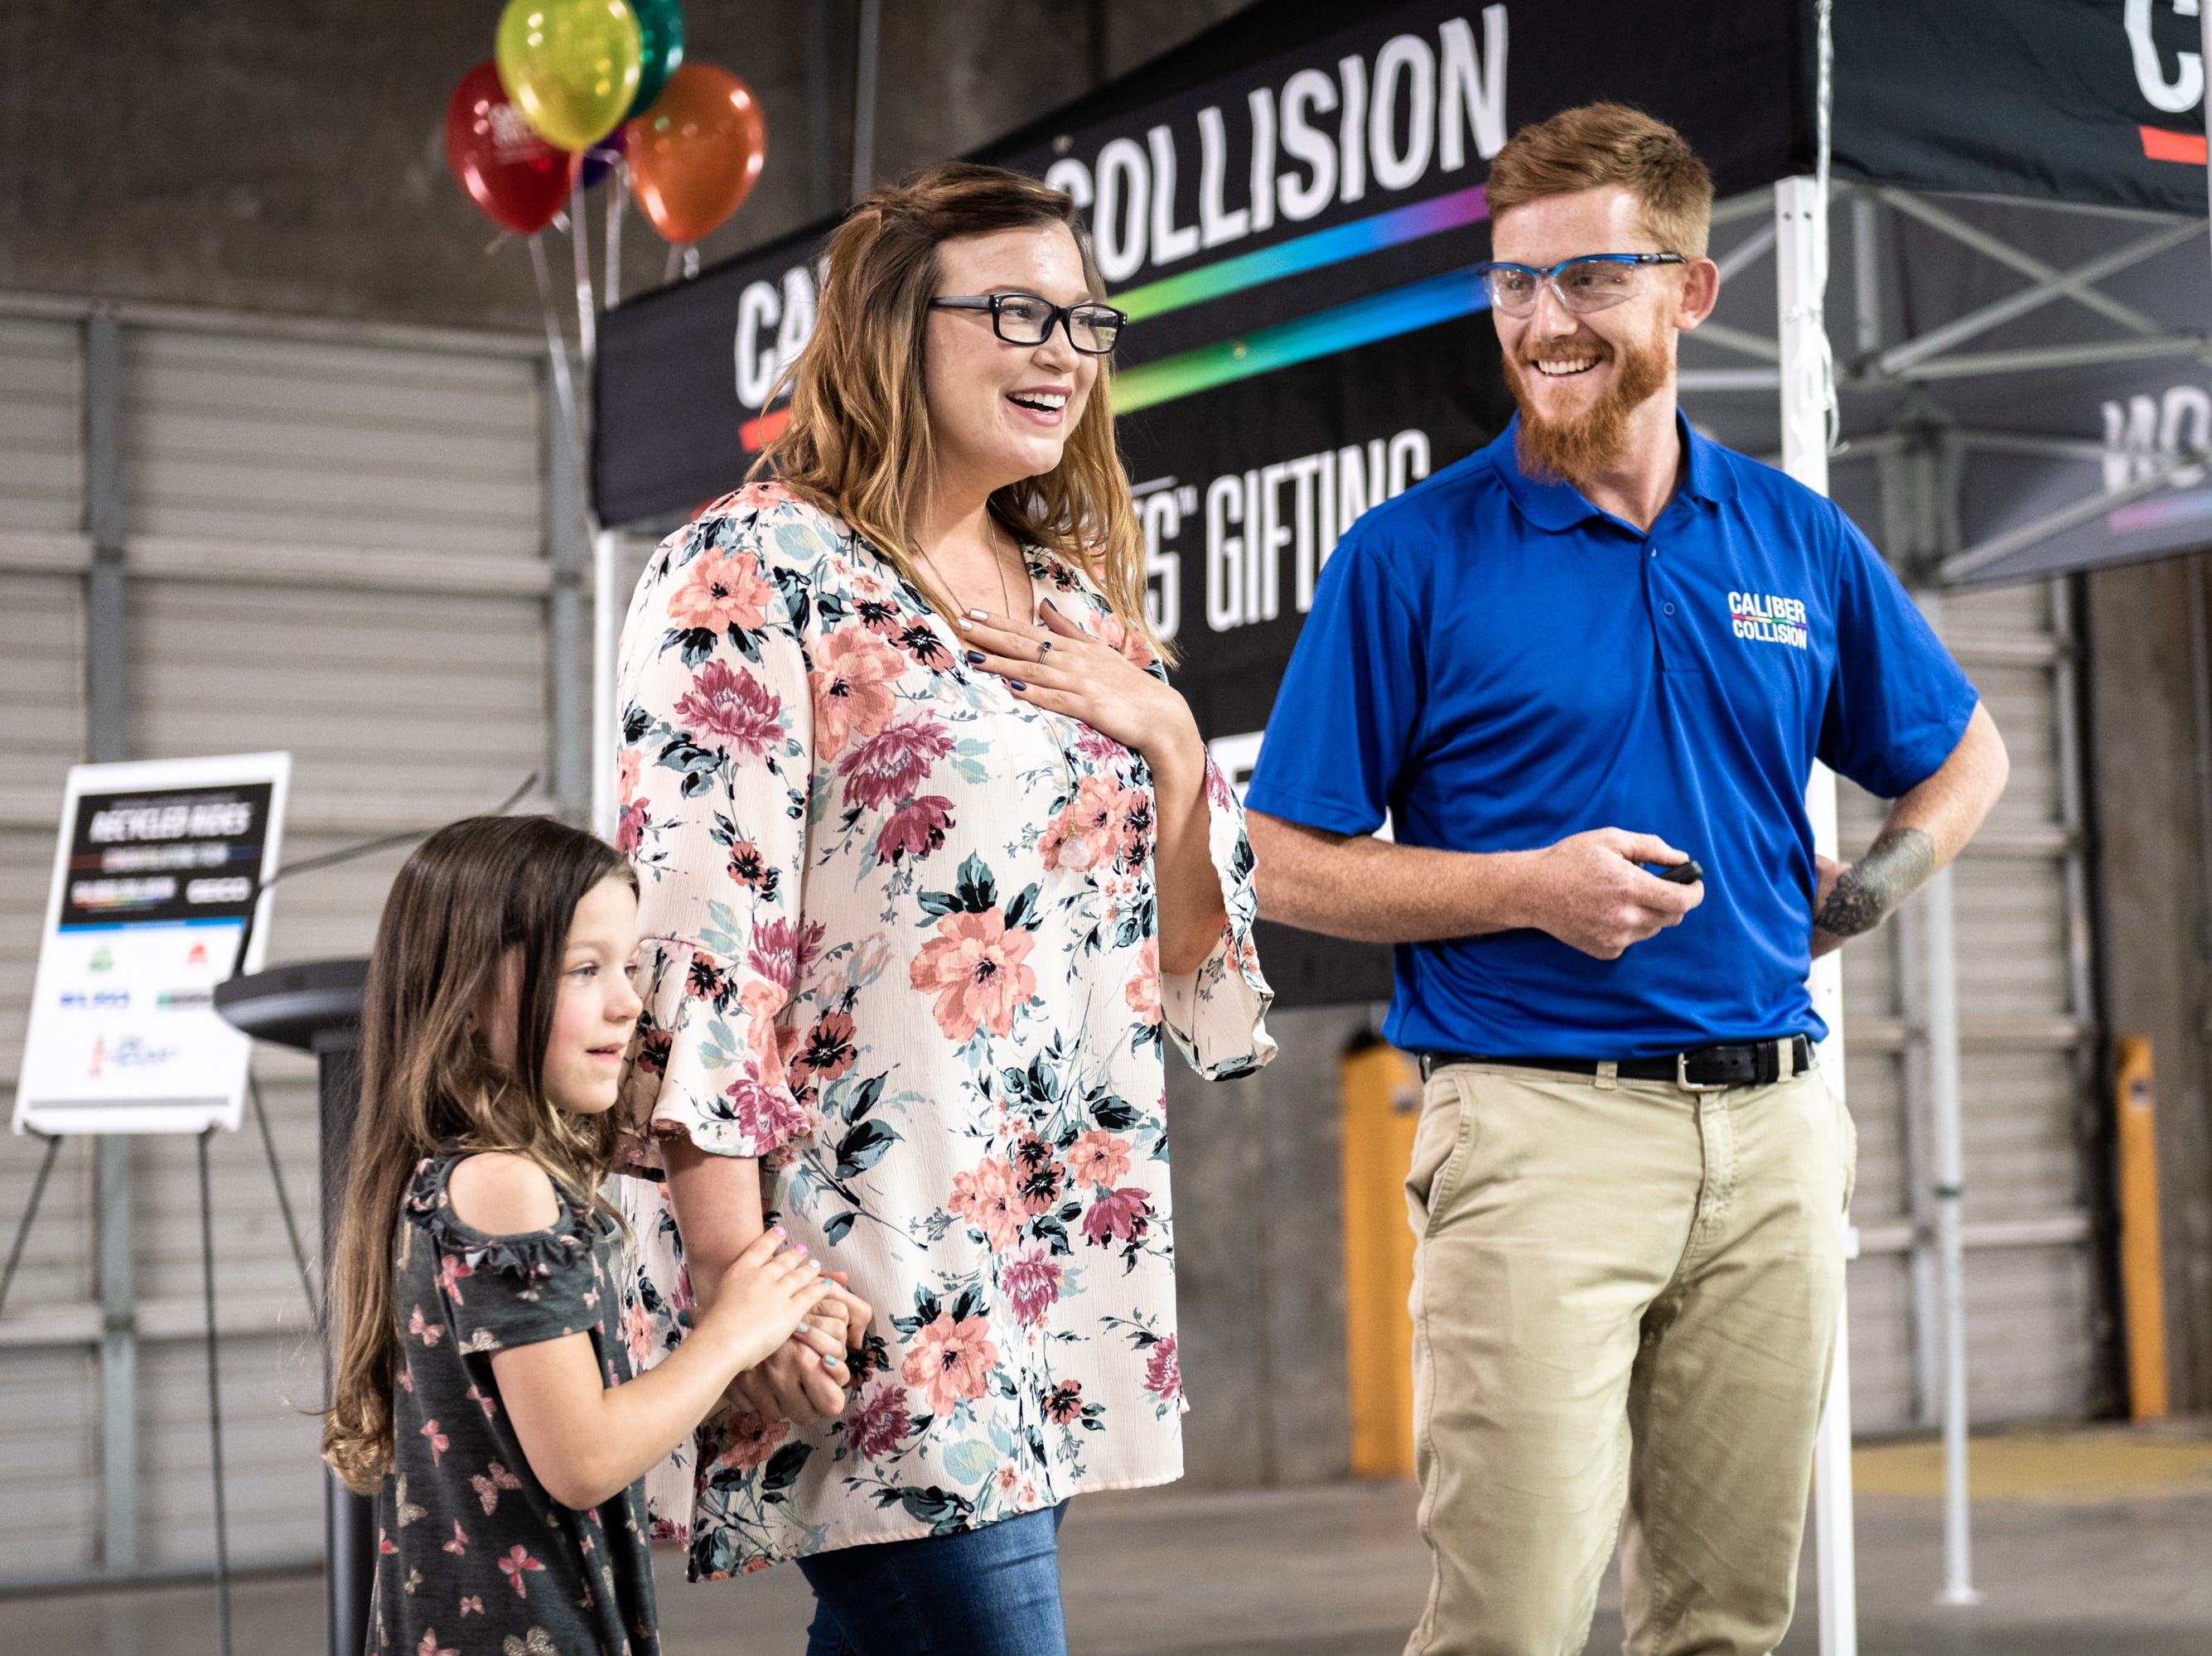 Leah Floyd, 23, with her daughter Avah Floyd, 5, is presented with a 2018 Chevy Cruze at Caliber Collision on Ridge Road in Greenville, Wednesday, May 8, 2019, as part of their Recycled Rides program. Caliber Collision partners with Geico for the program and worked with local nonprofit, AIM who nominated Floyd as the recipient.